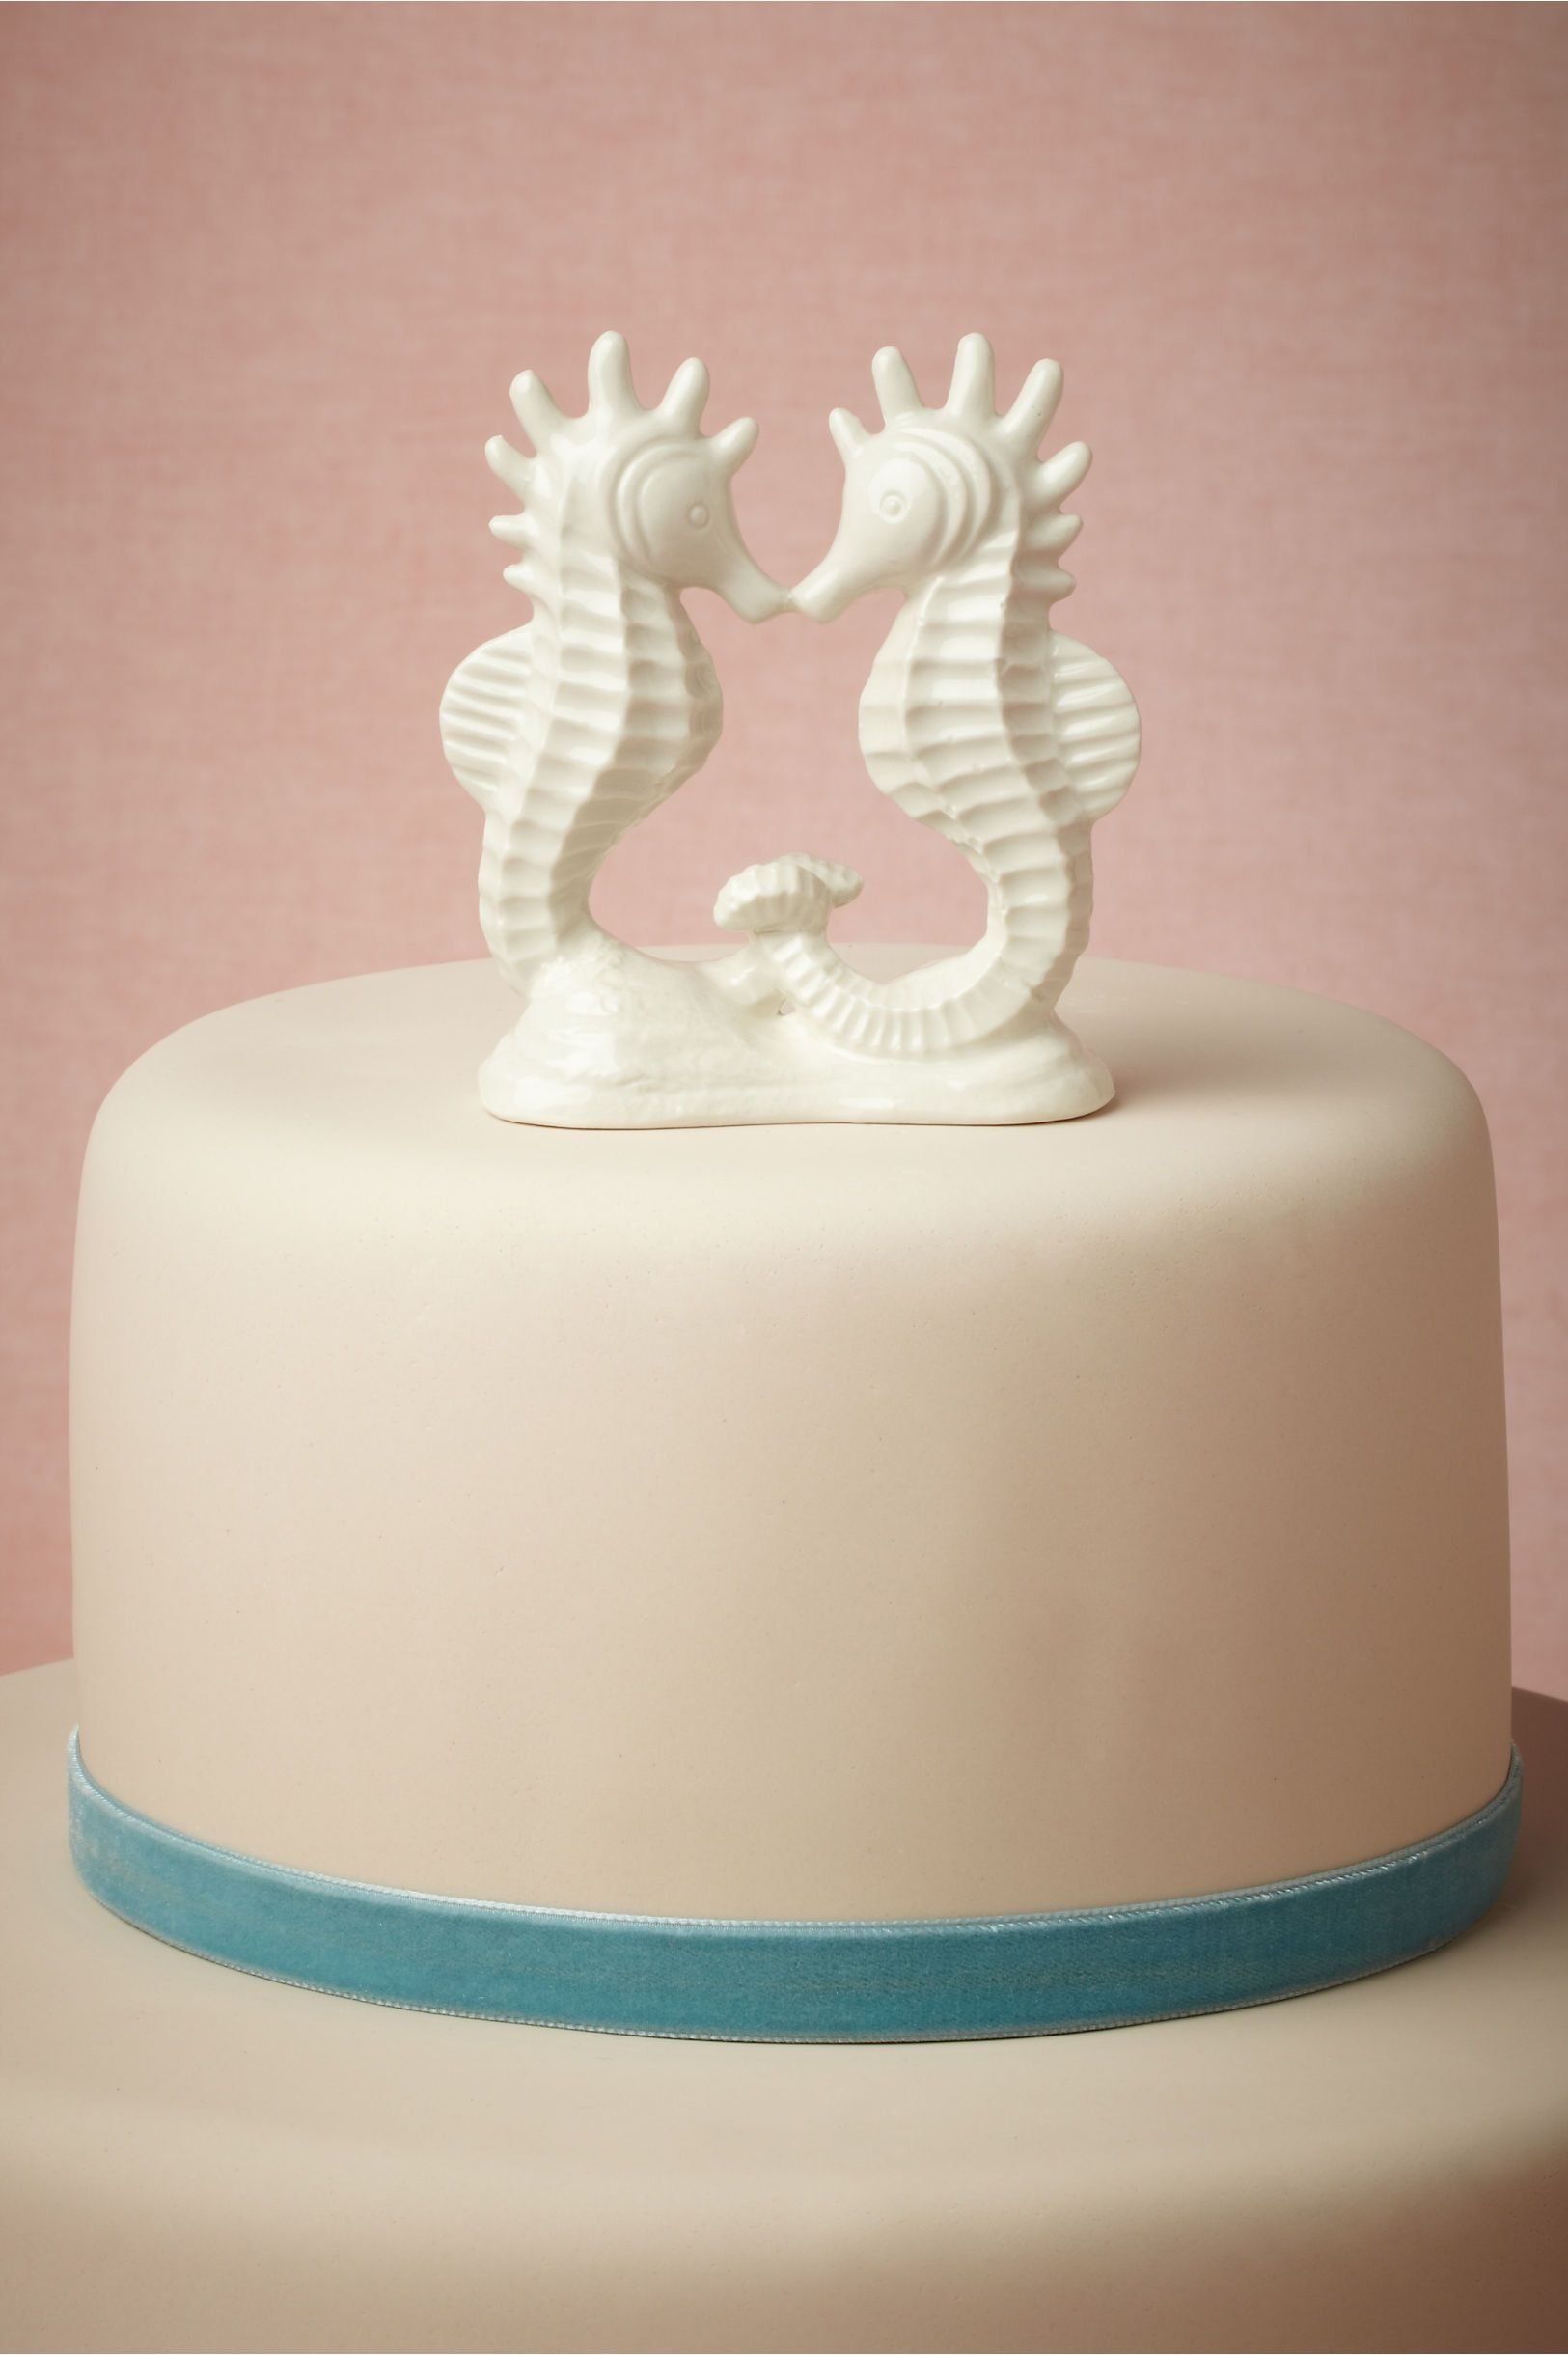 Sweet seahorse cake topper from BHLDN. (Maybe for Bahamas ...